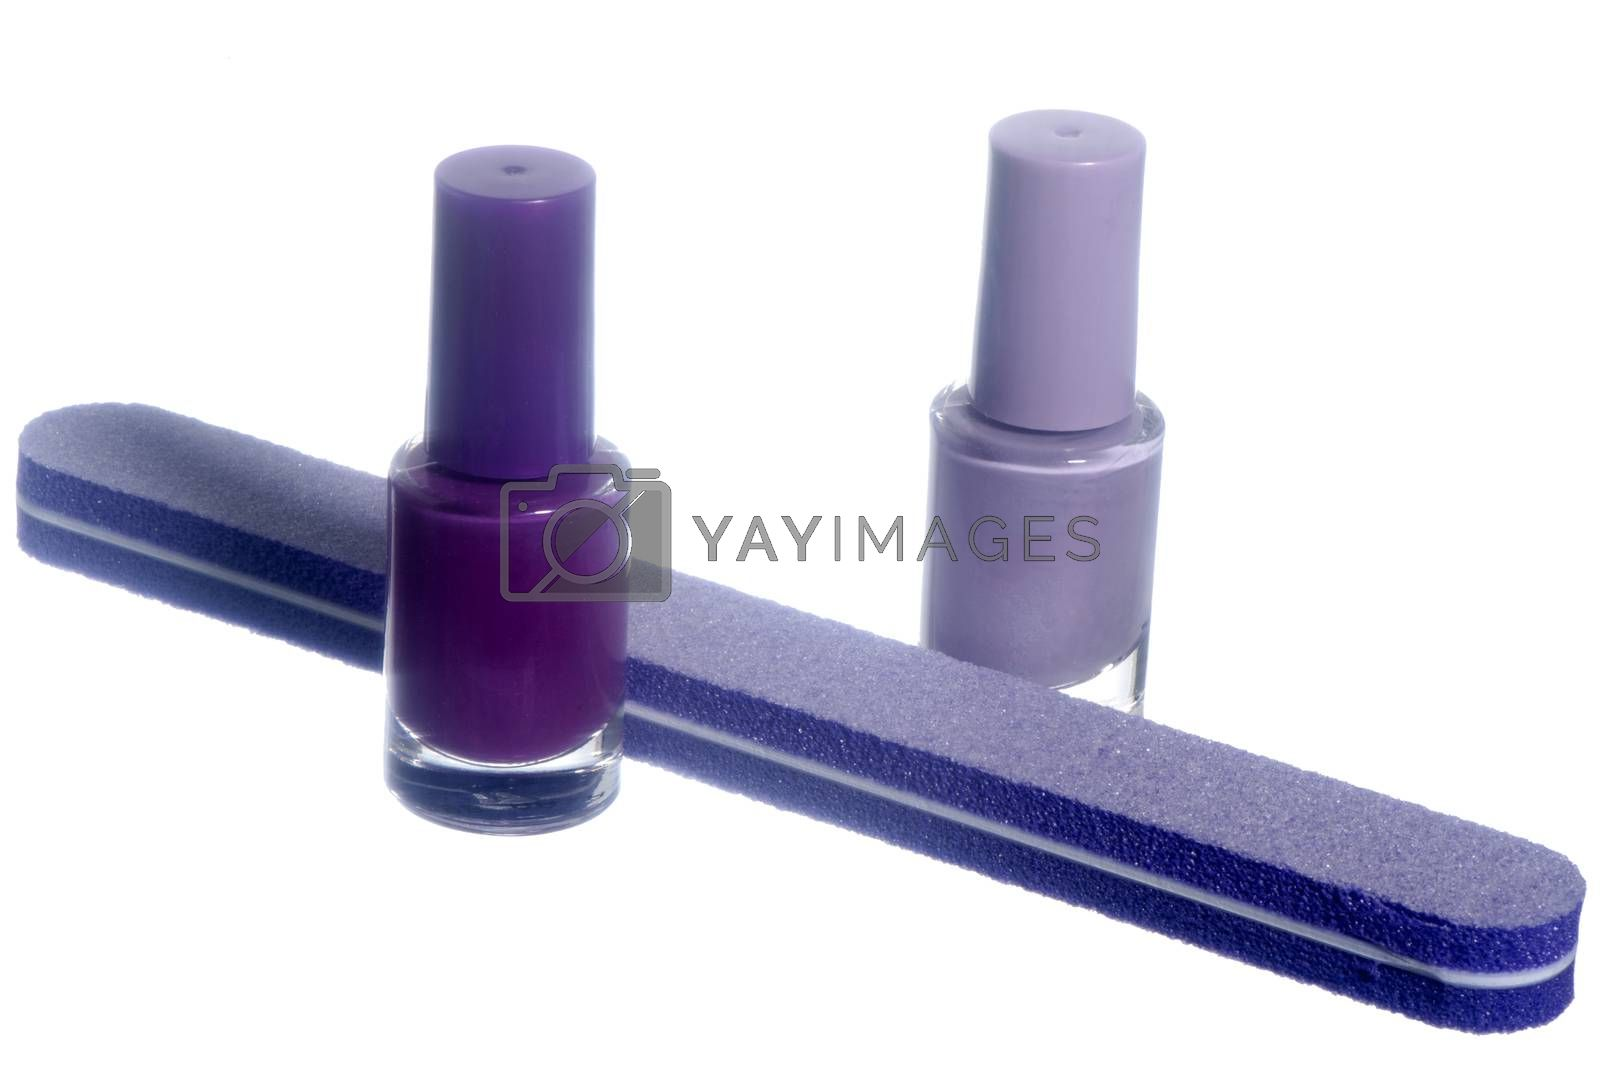 nail polish and tools  for manicure  by carla720